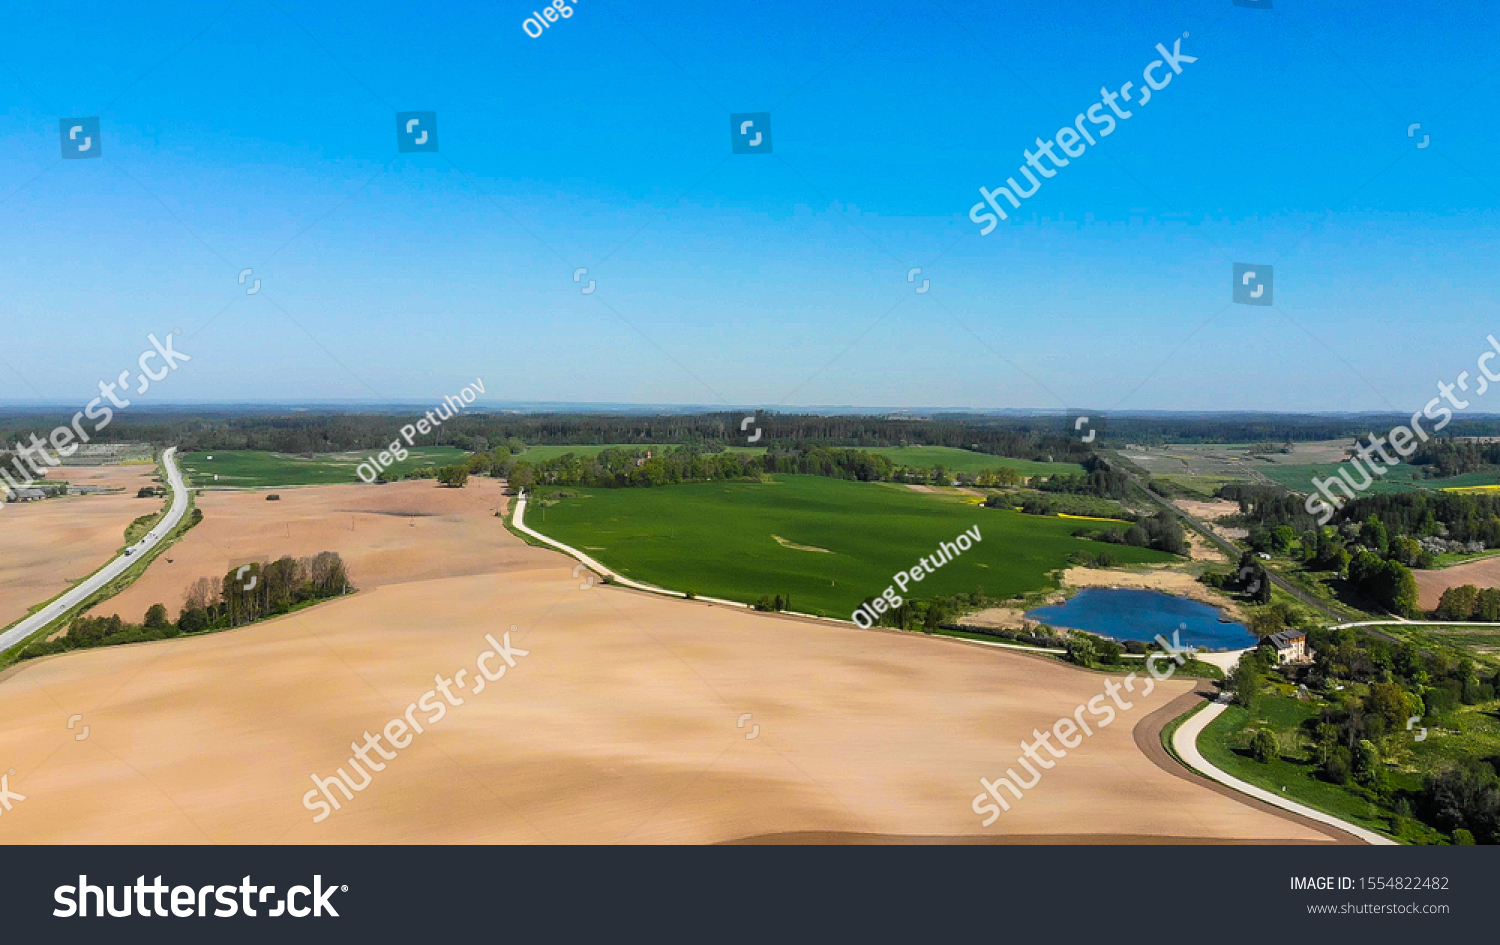 Farmers field. Green farmers field. shot from above, from drone. Field and forest. Beautiful top view of plowed and sown fields. Aerial panorama drone view of typical agricultural landscape. #1554822482